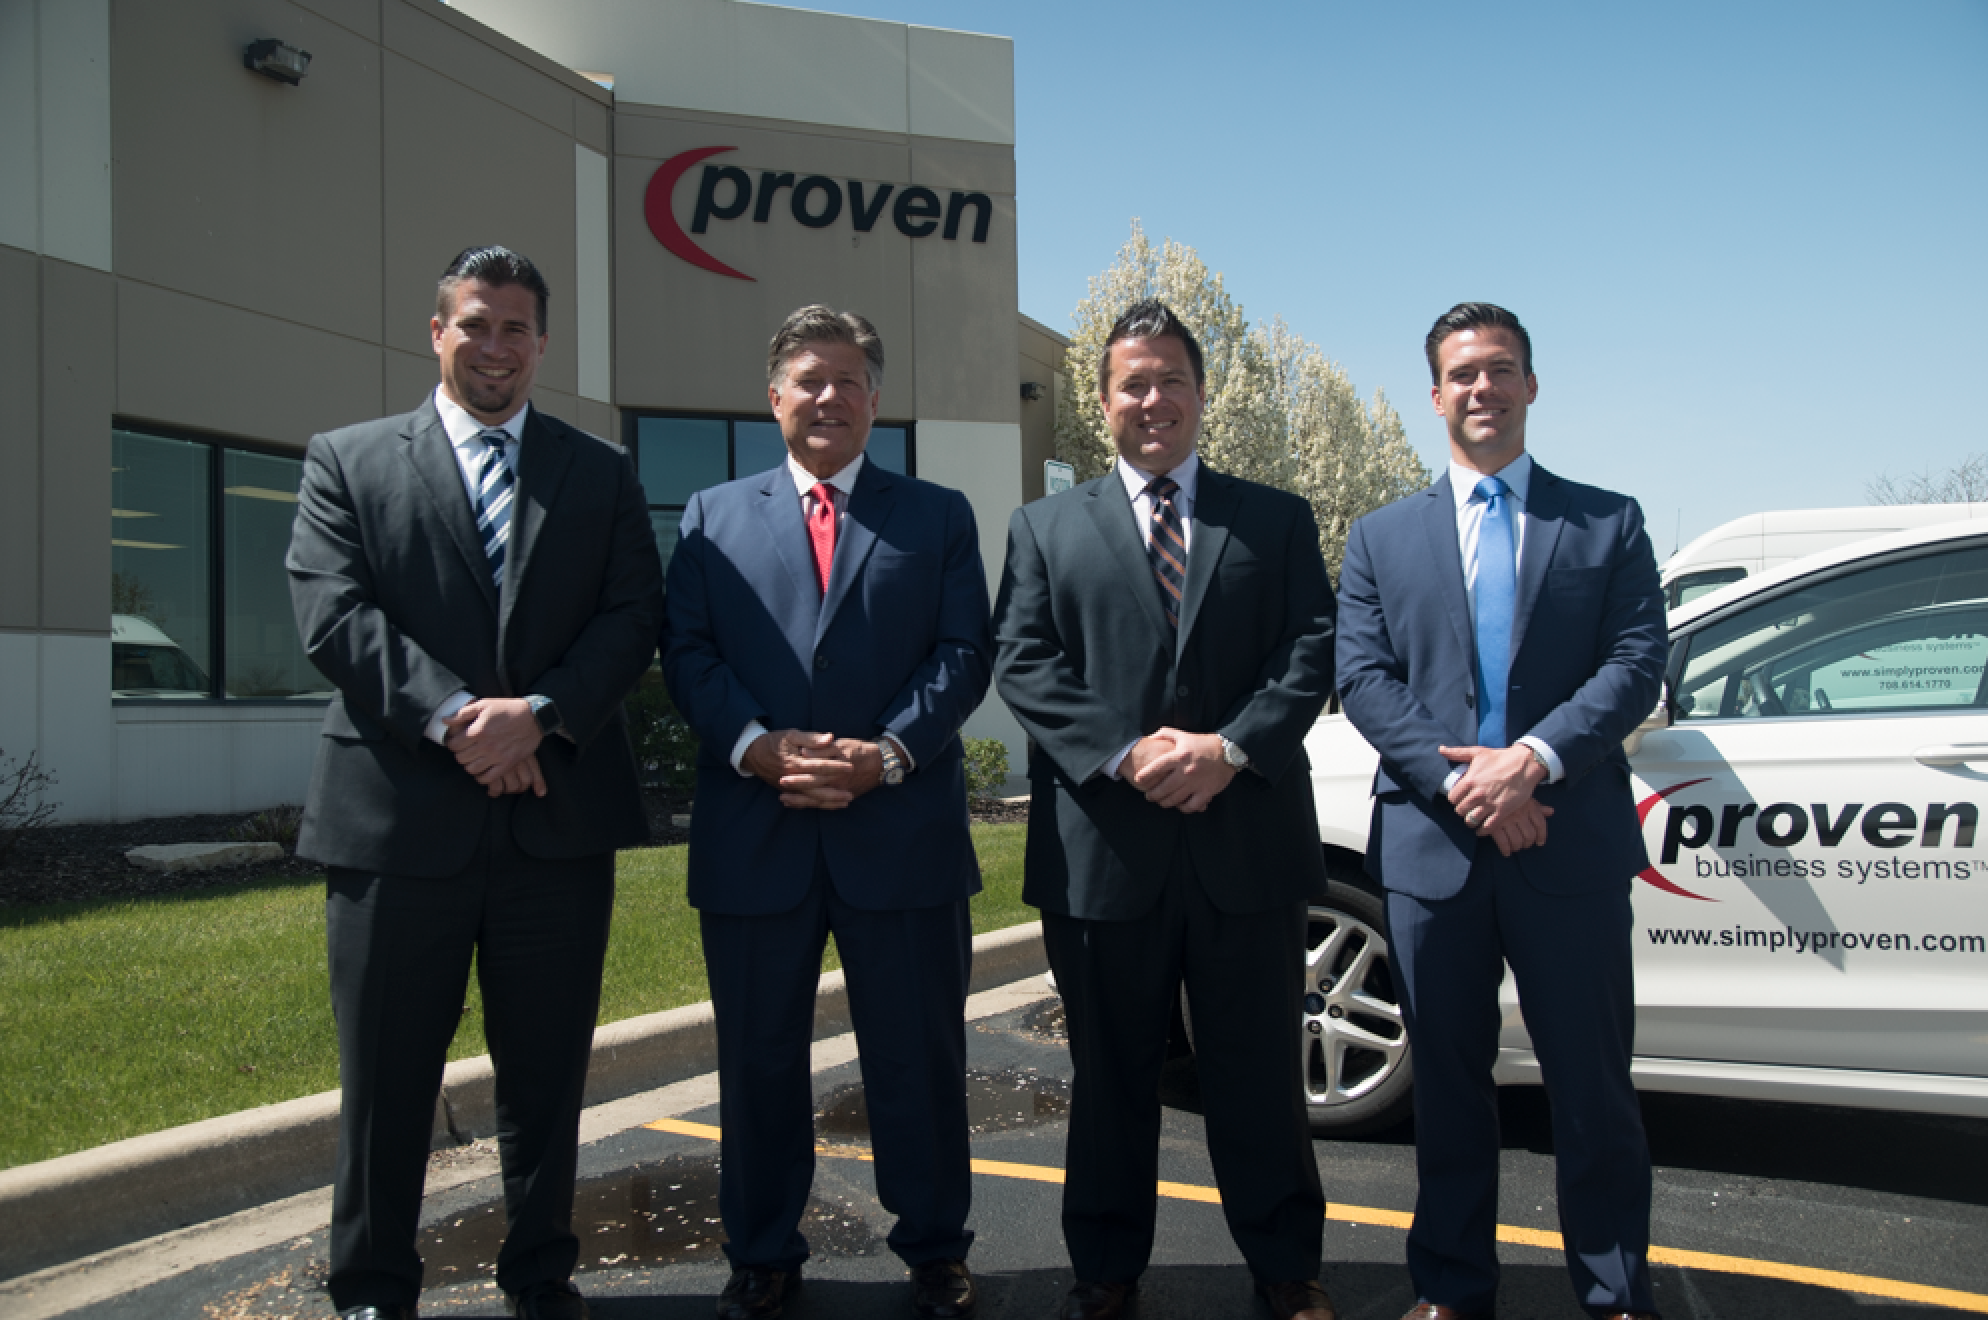 Brett, John , Johnny Cosich, Tory Cosich of Proven Business Systems, Chicago